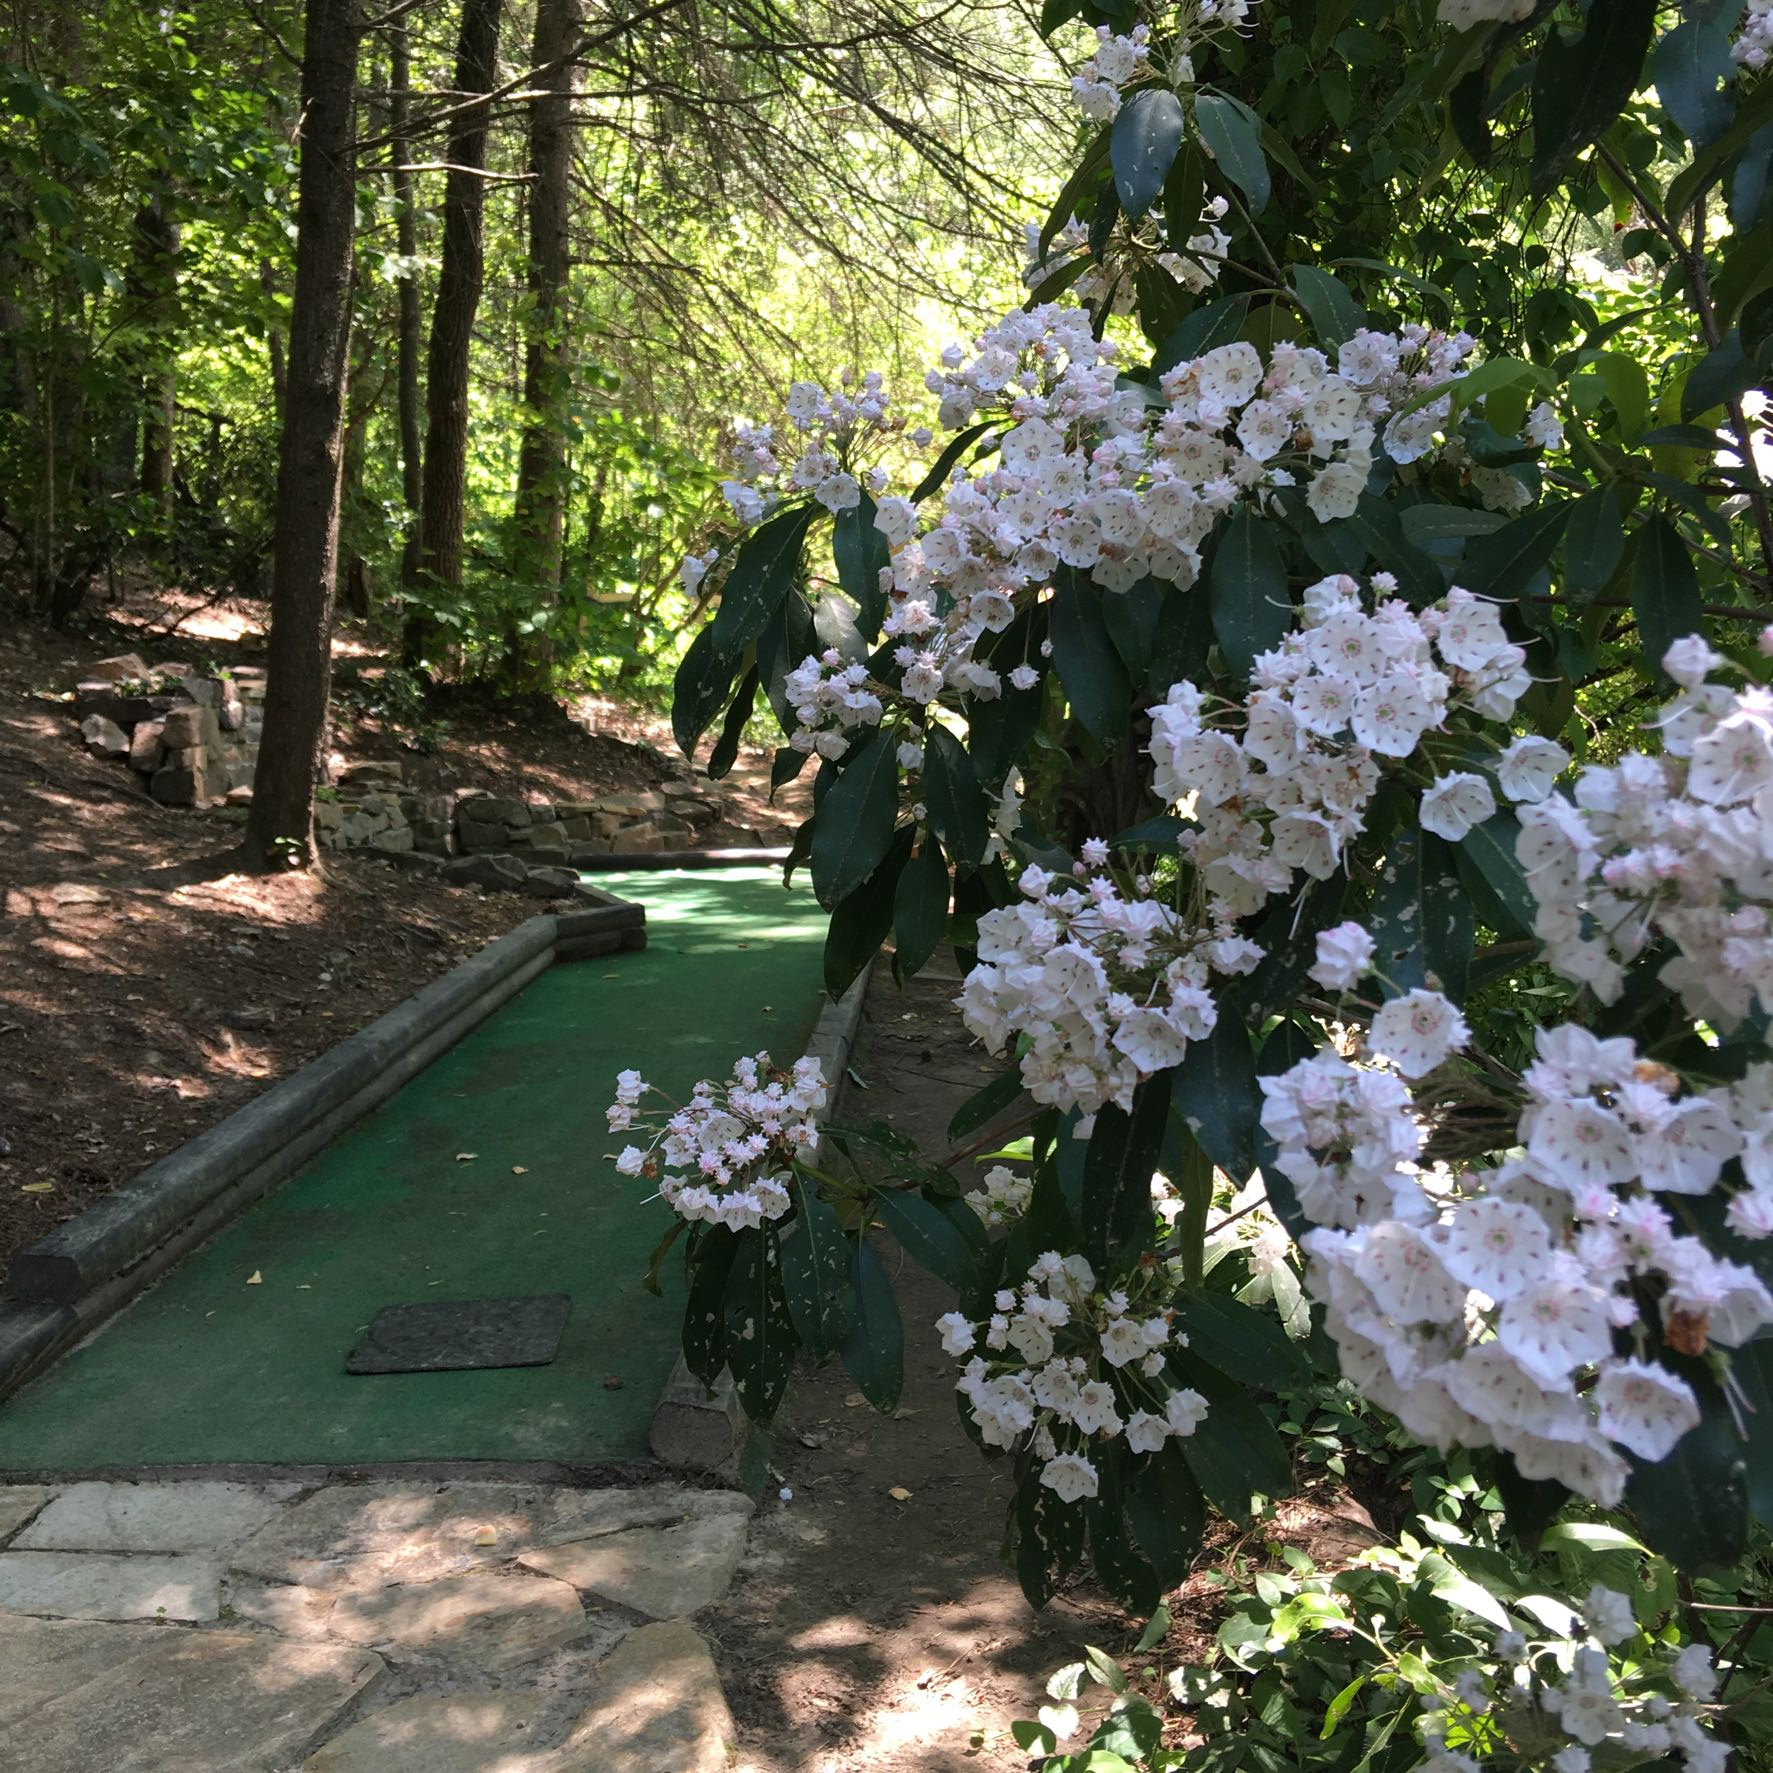 Mini Golf In Blue Ridge GA